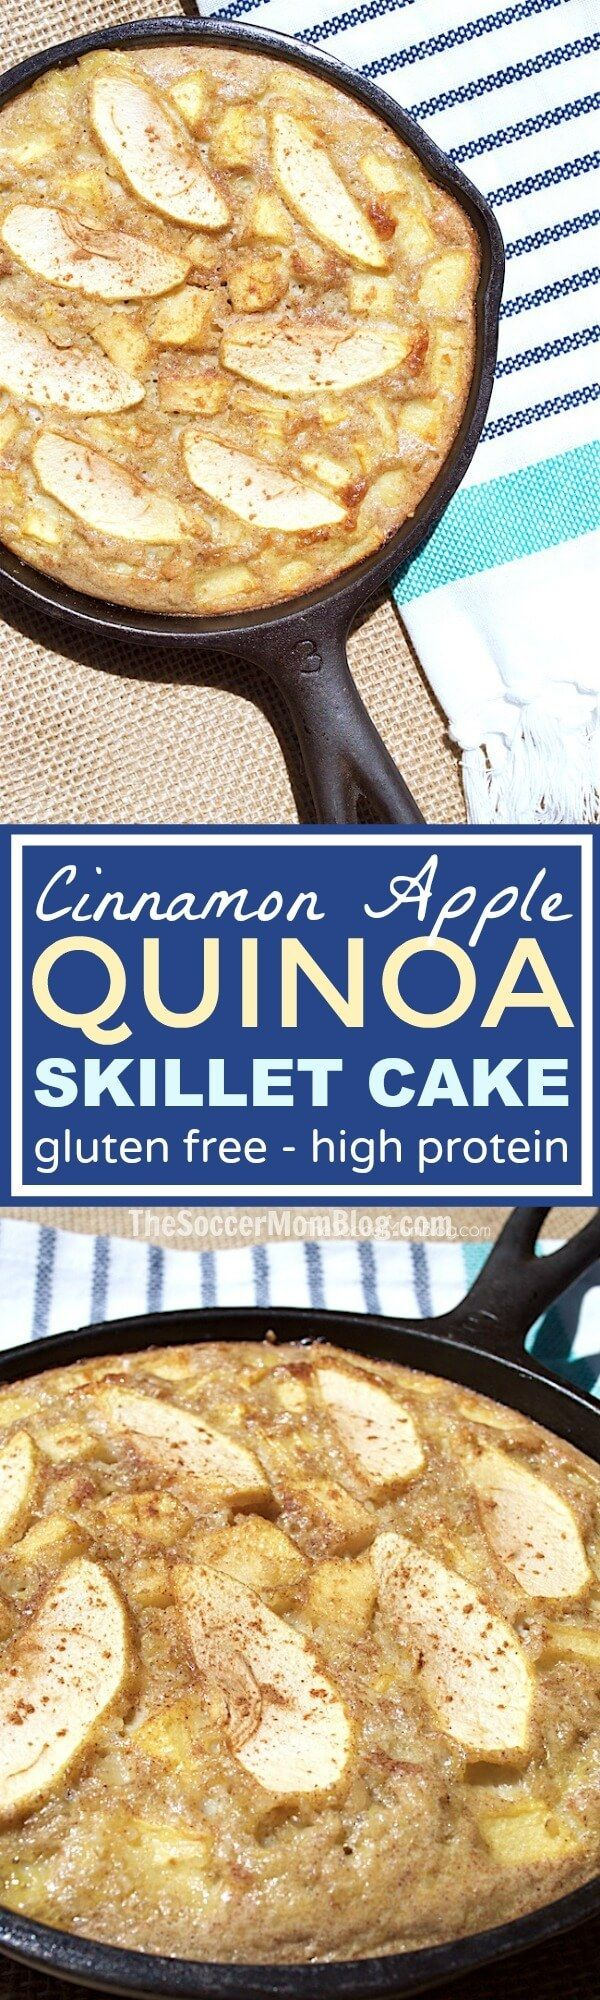 Apple pie gone guilt-free! This quinoa apple cake recipe is packed with protein, plus it's gluten free and lactose free. Easy and gorgeous!